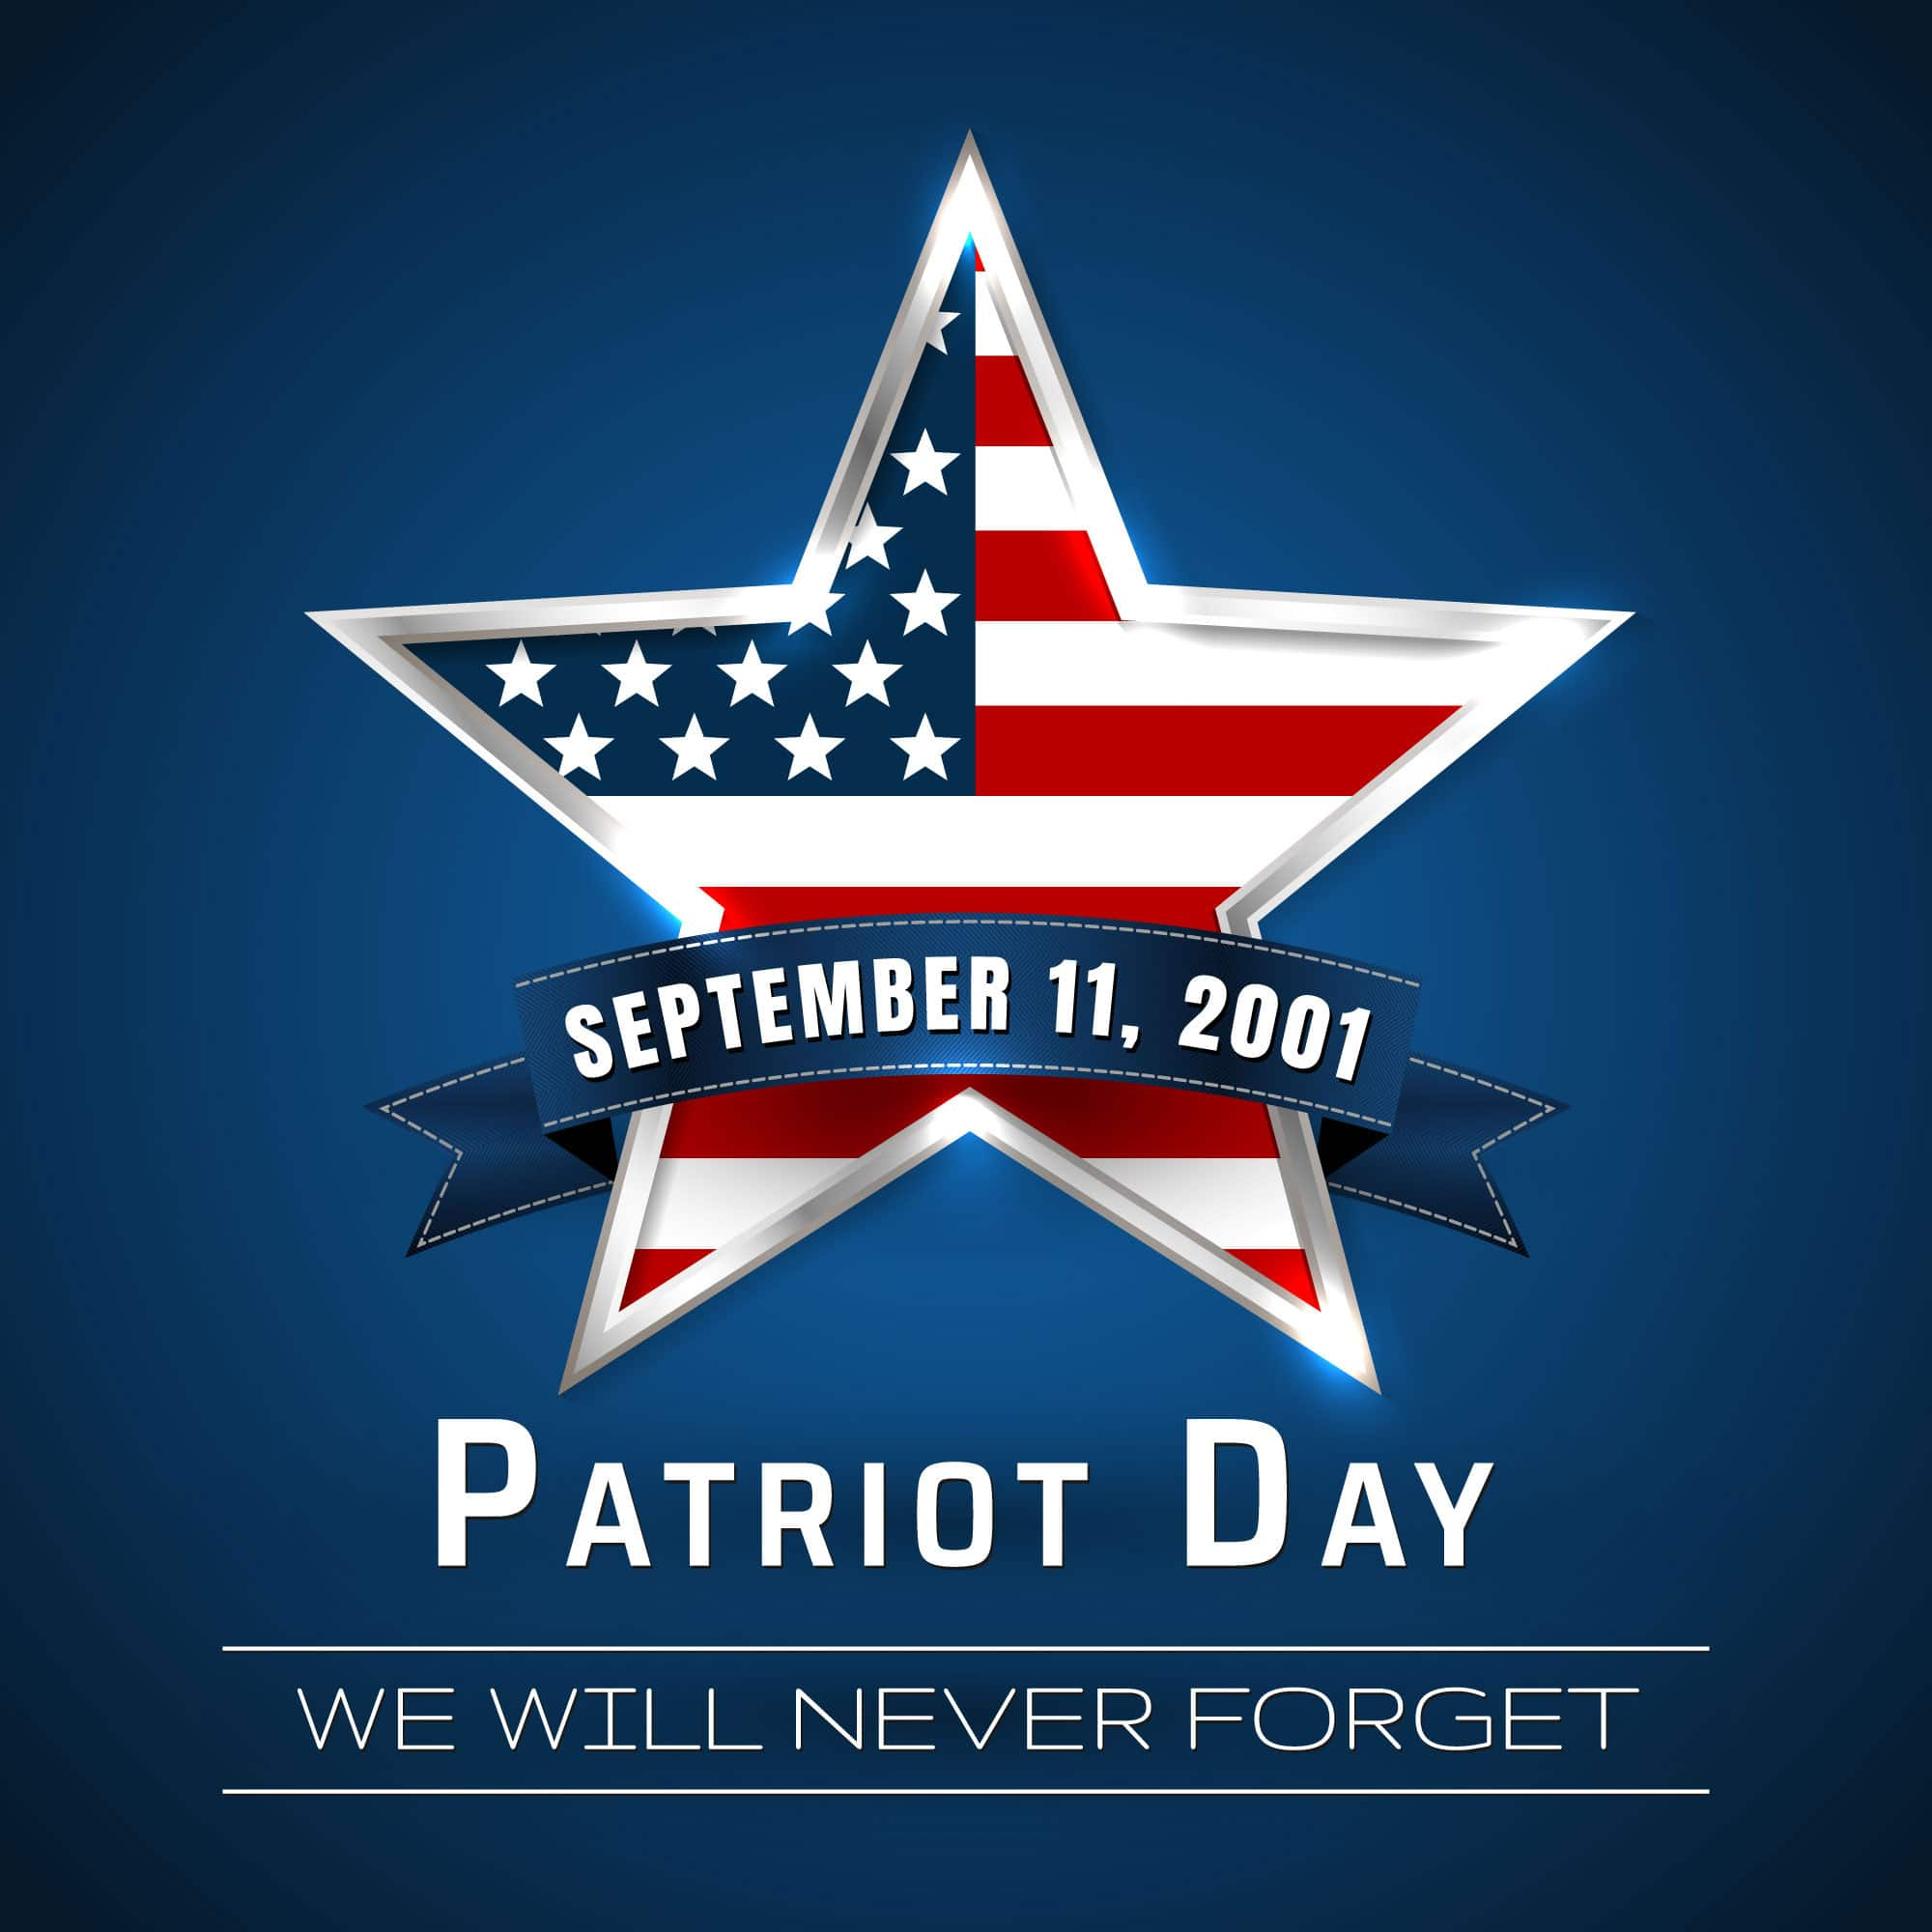 Patriot Day - National Day of Service and Remembrance